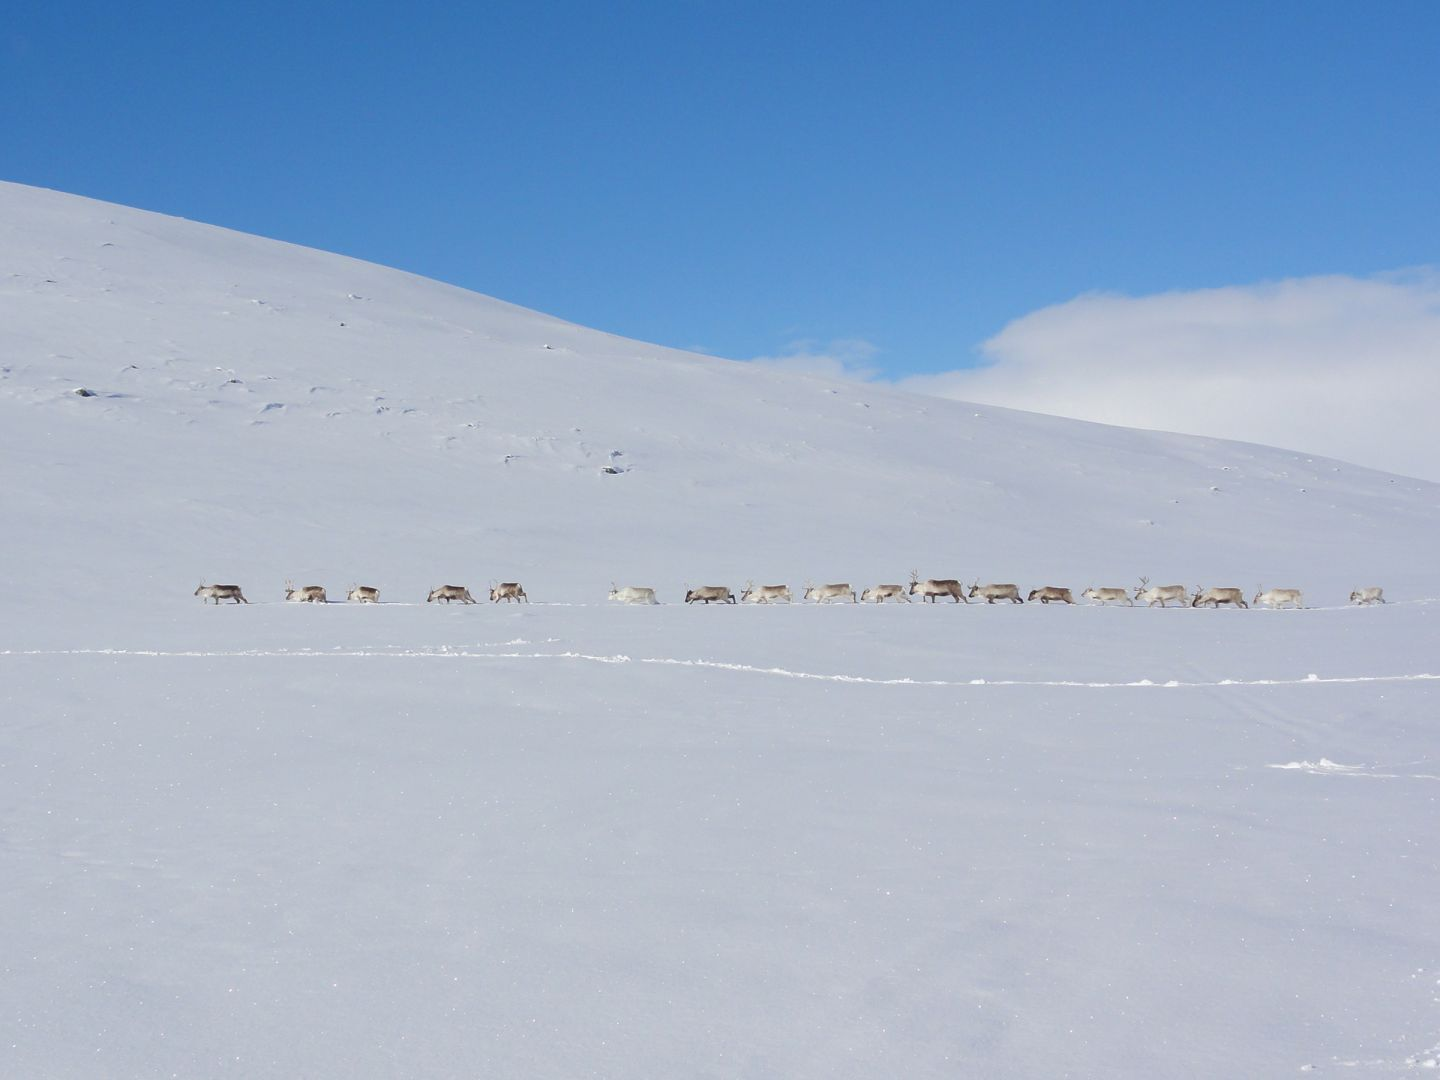 Reindeer herd on an arctic scenery in Enontekiö, Lapland